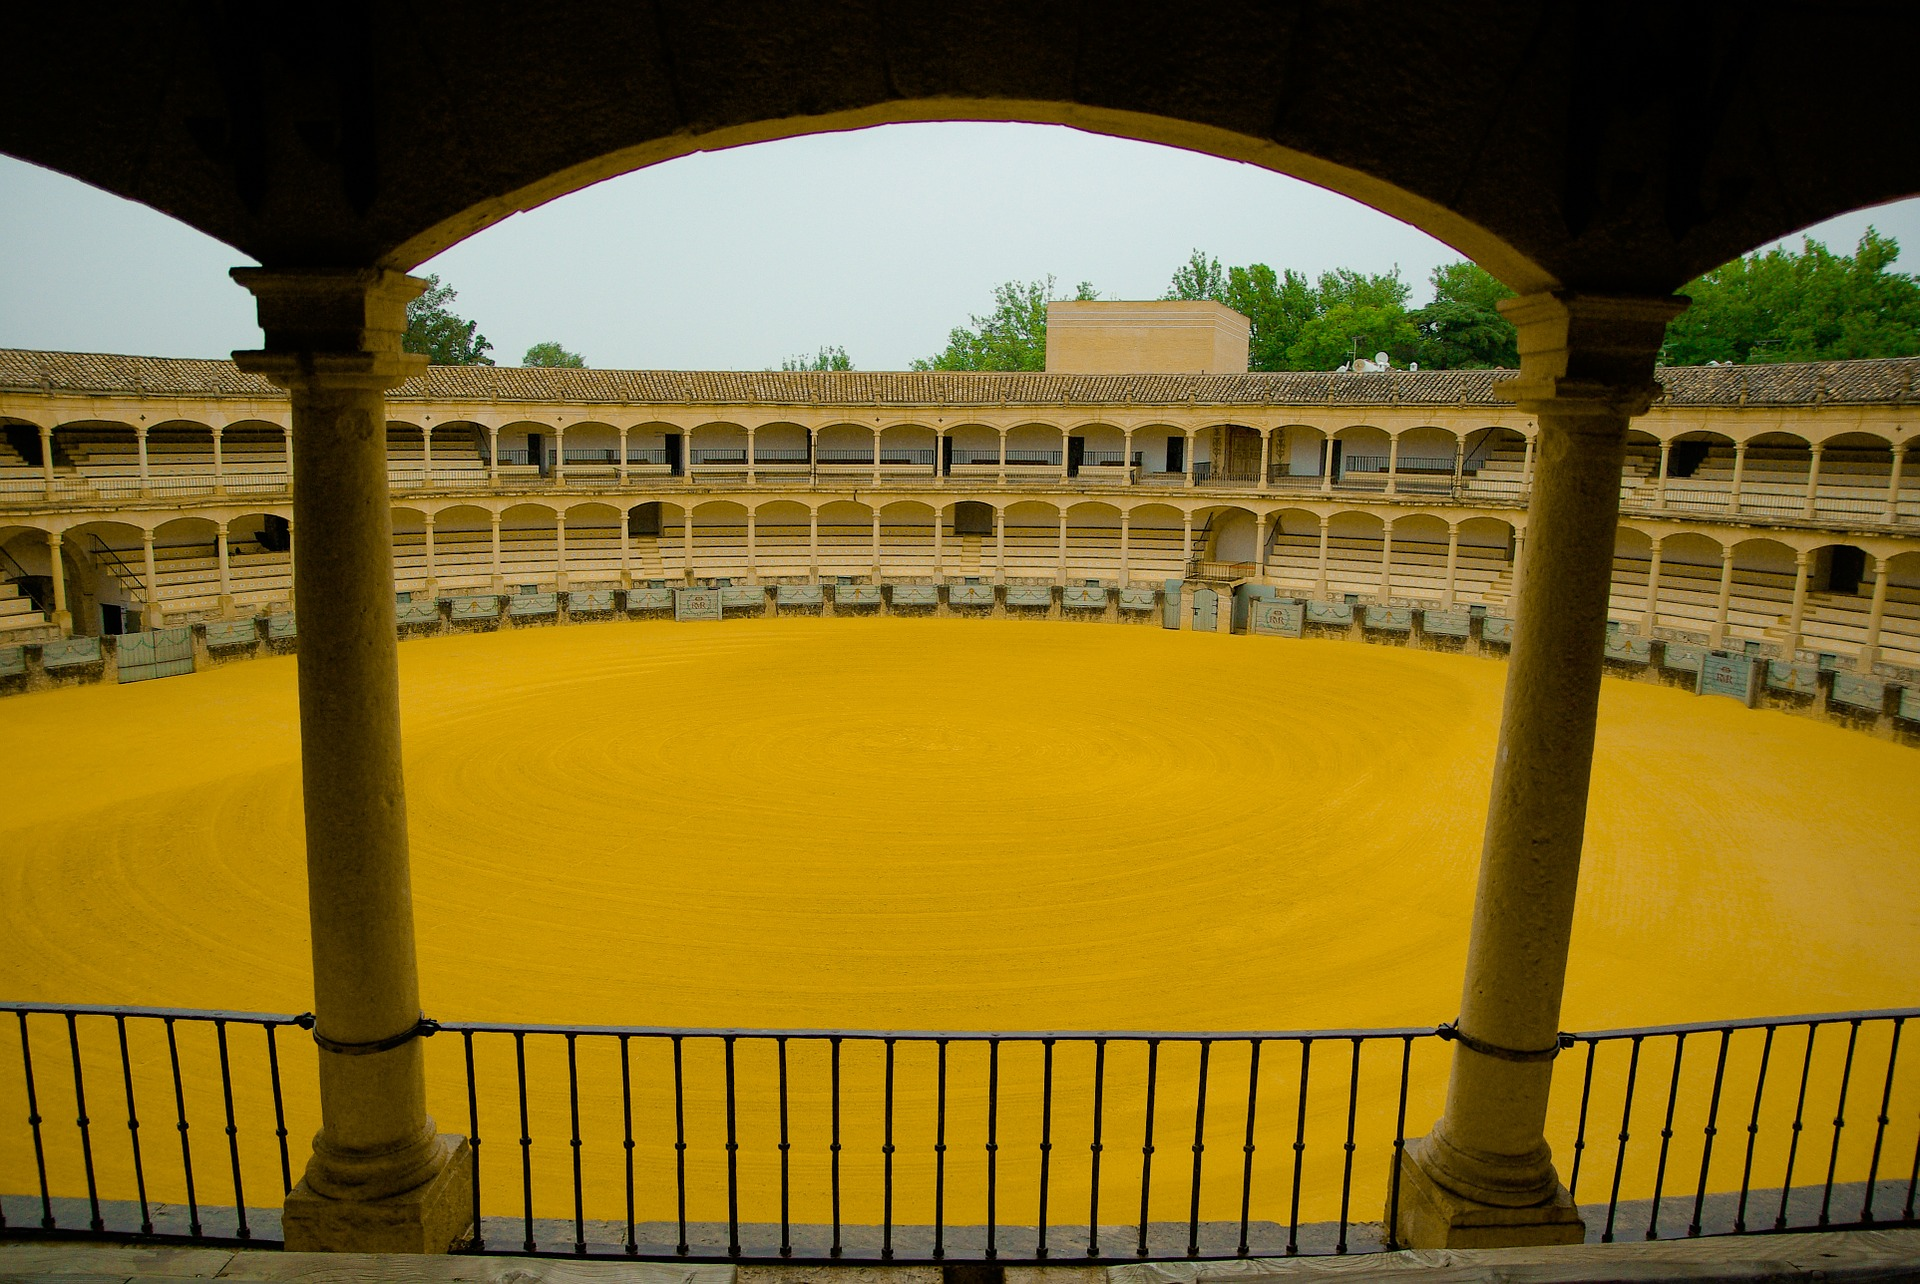 The Best of Spain, Real Maestranza de Caballeria de Ronda, oldest bullfighting ring in Spain, Ronda, Spain